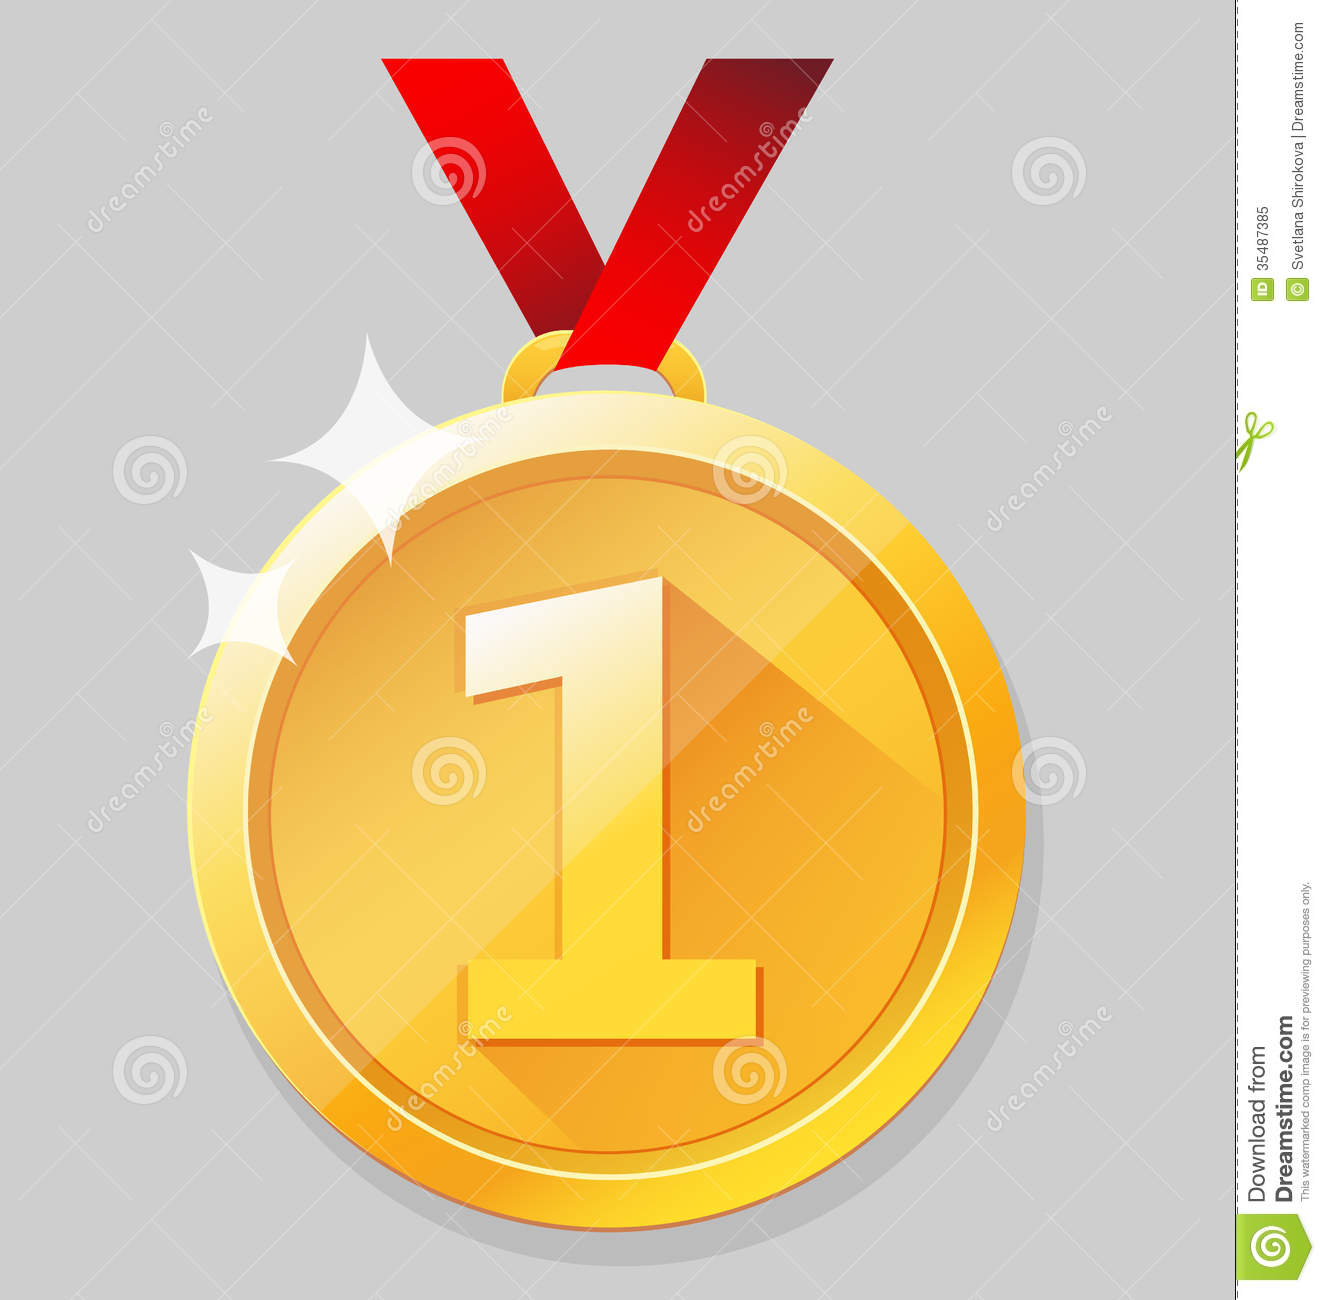 Shining Gold Medal Royalty Free Stock Photo  Image: 35487385